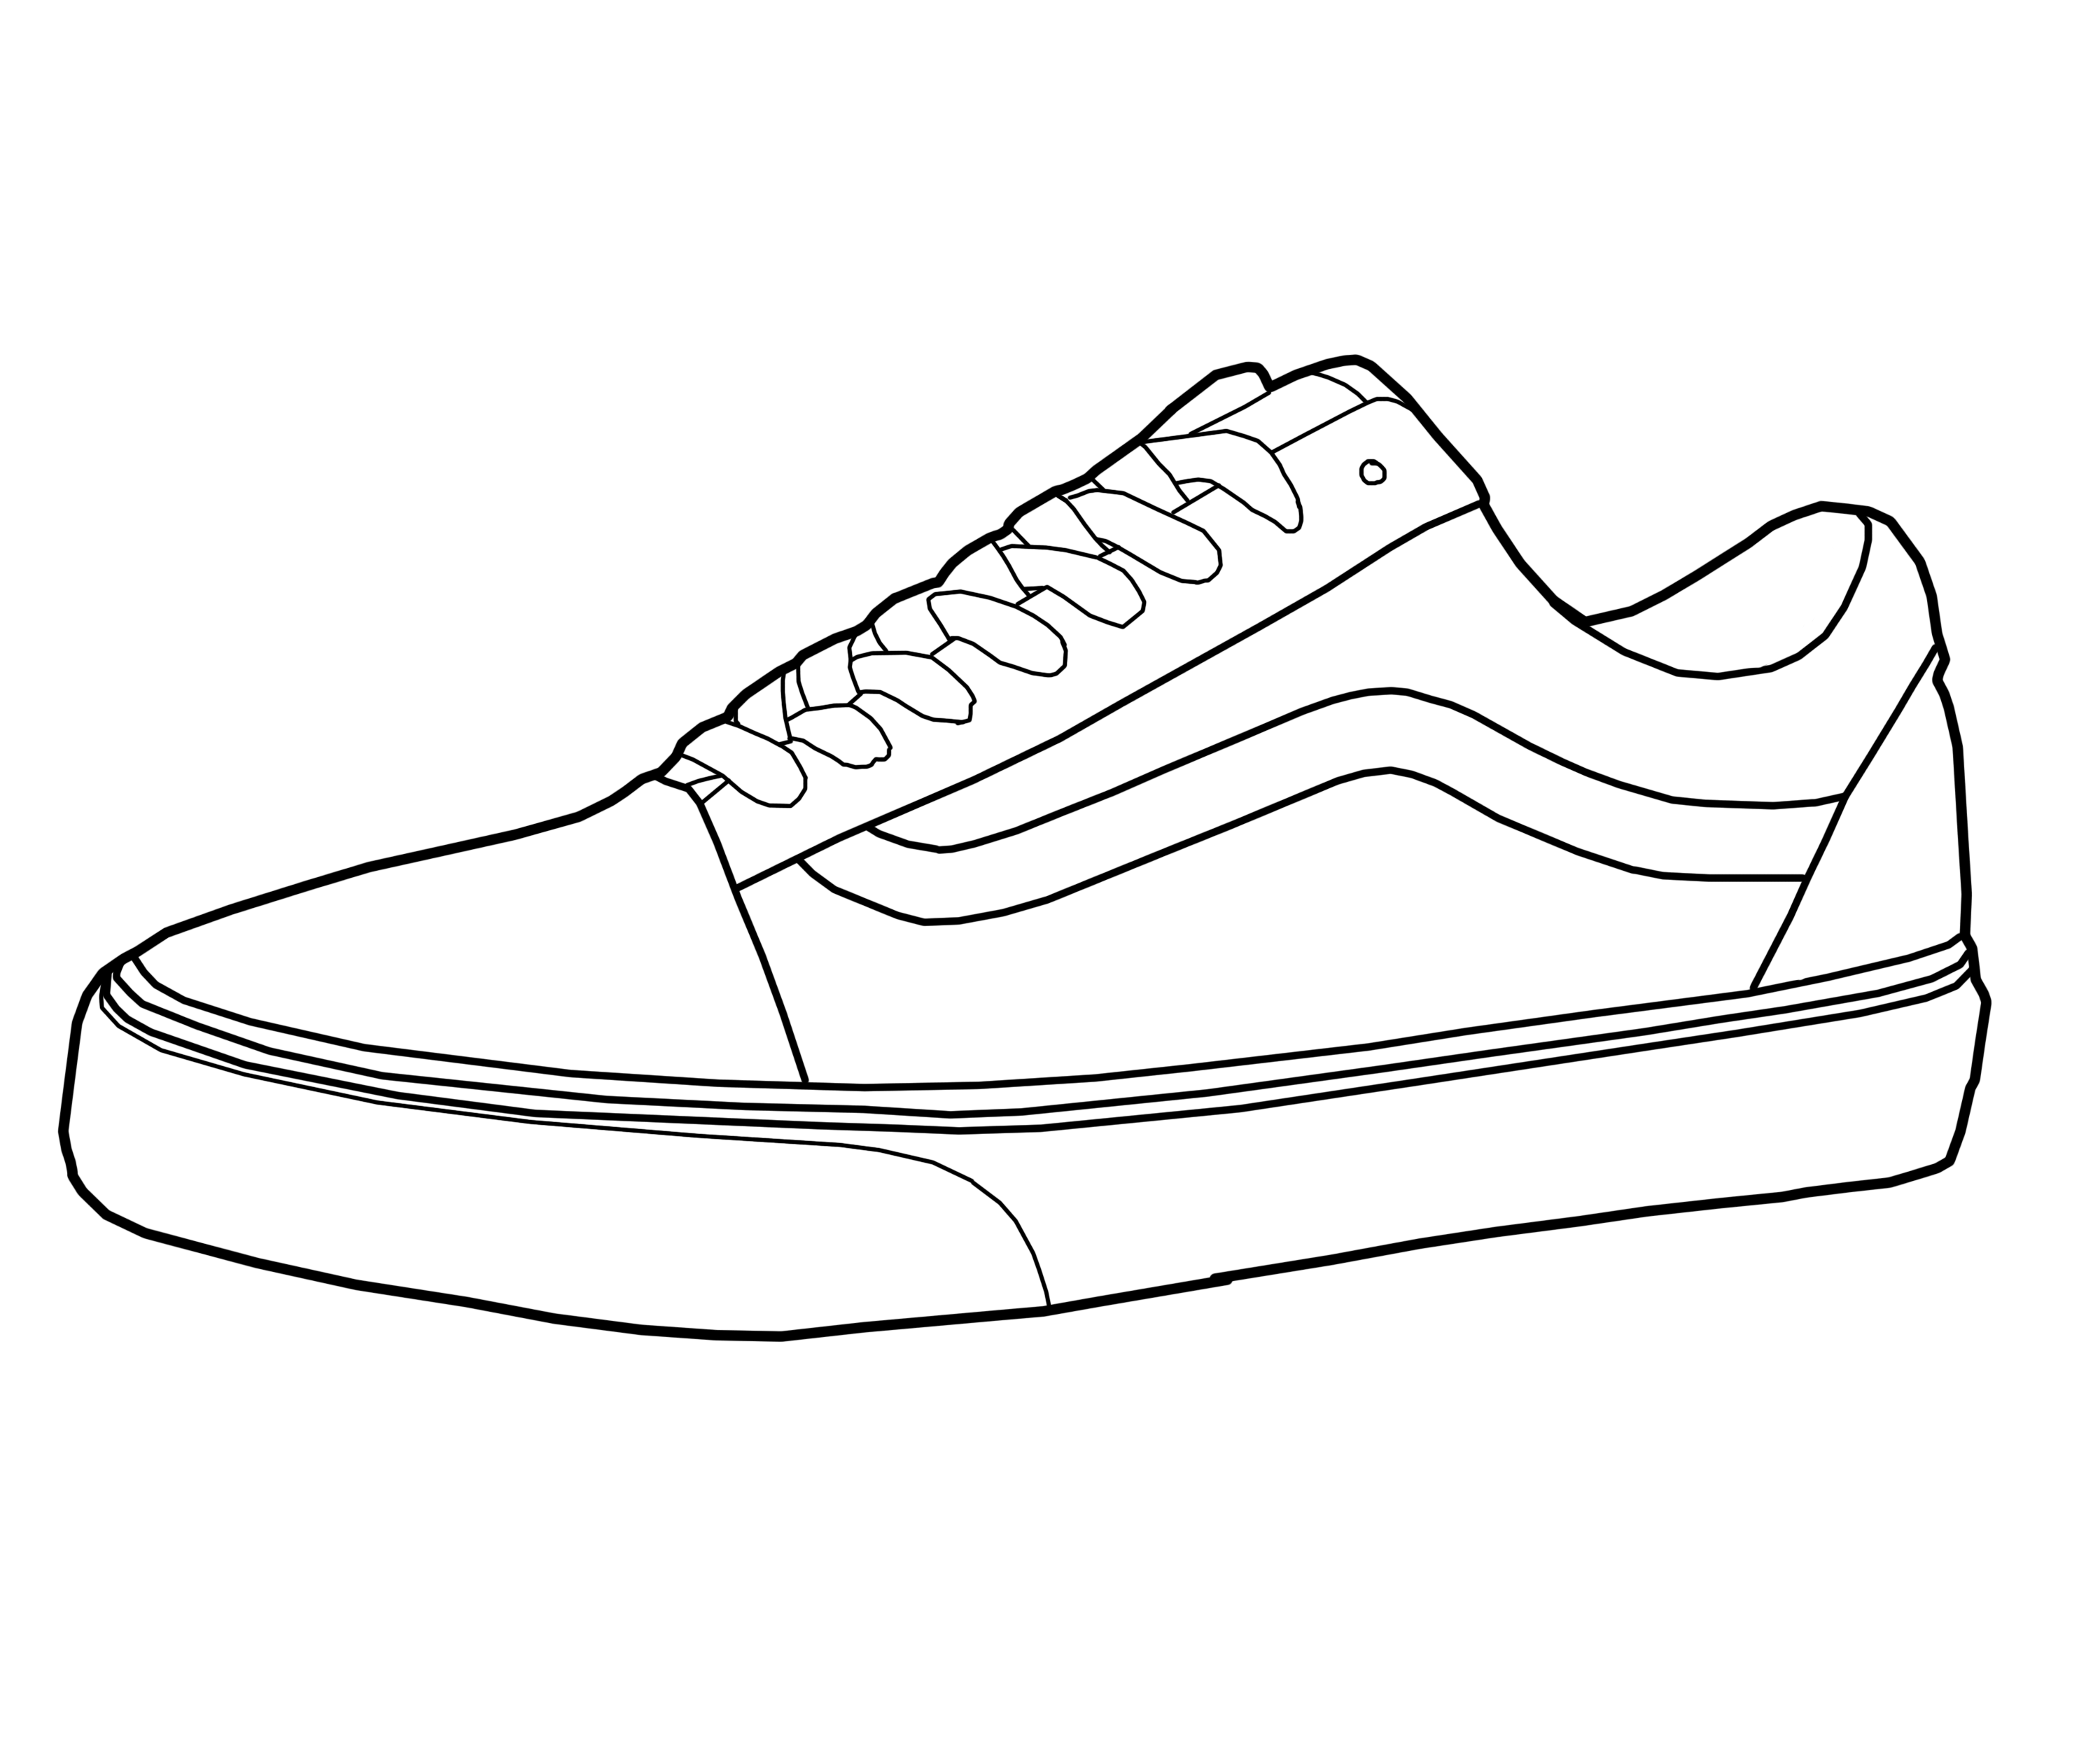 Line Drawing Van : Vans shoe drawings pe health pinterest van shoes